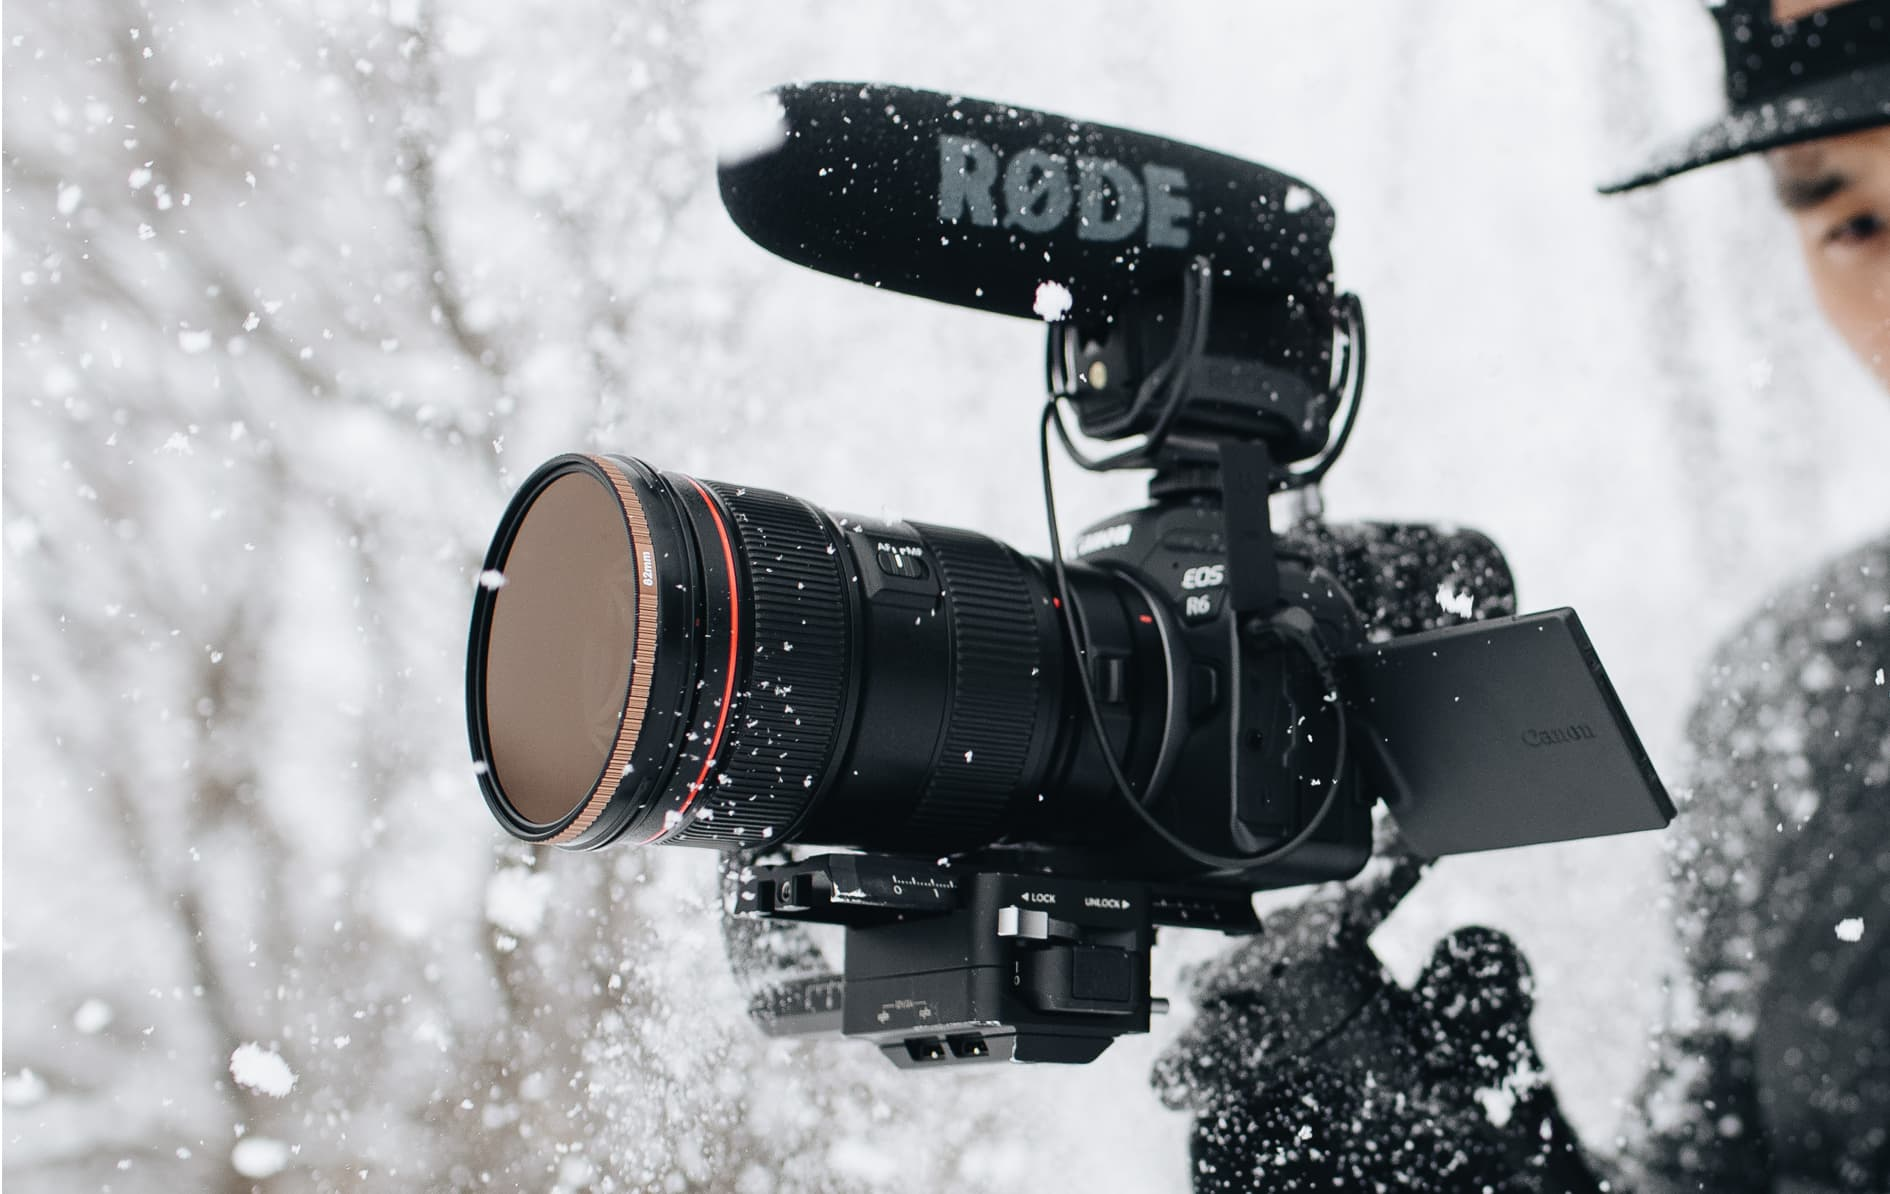 Videography accessories, Accessories for videographers, Tools for videography